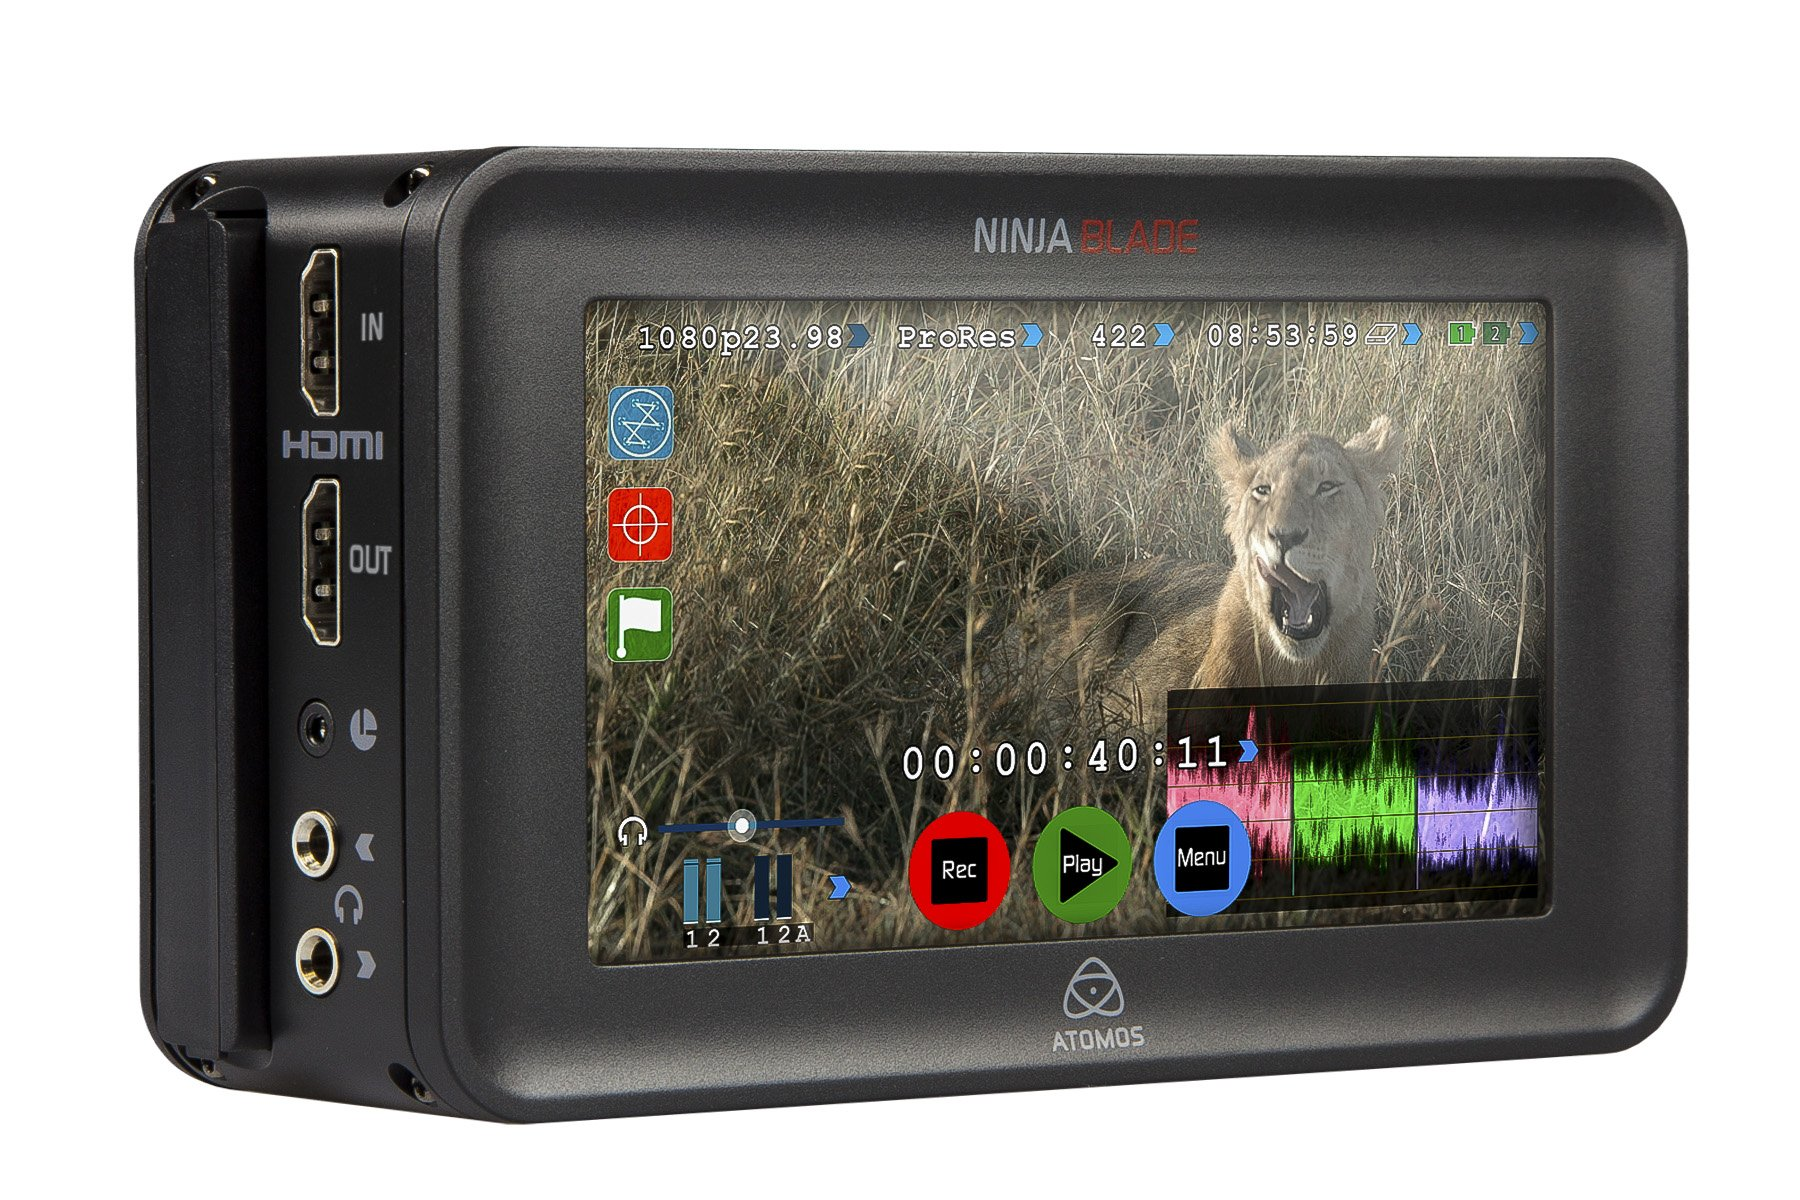 Atomos Ninja Blade 5'' HDMI On-Camera Monitor & Recorder